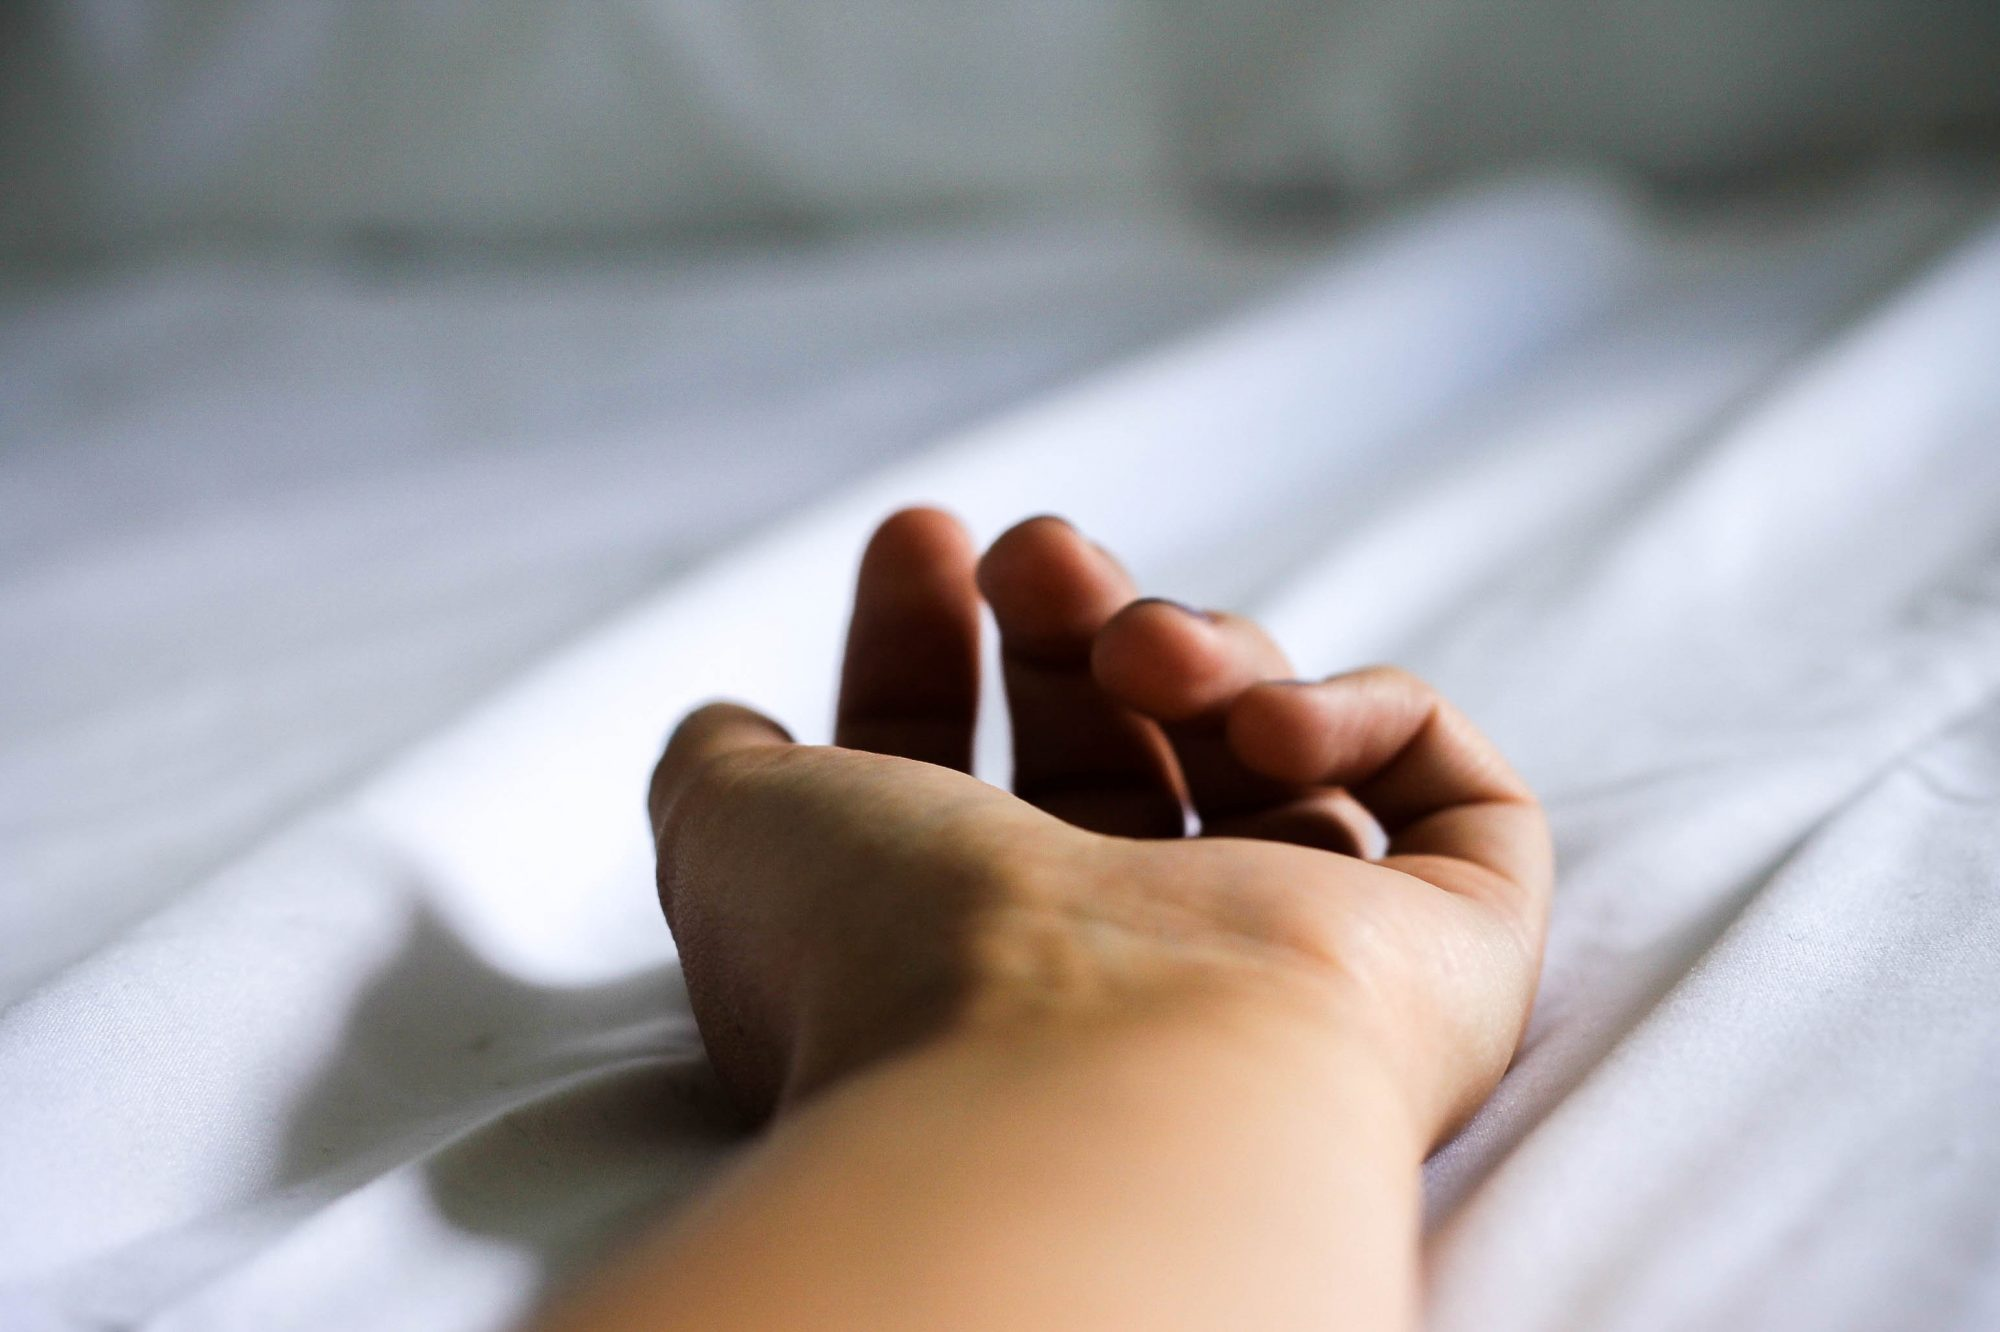 hand on bed, sleep